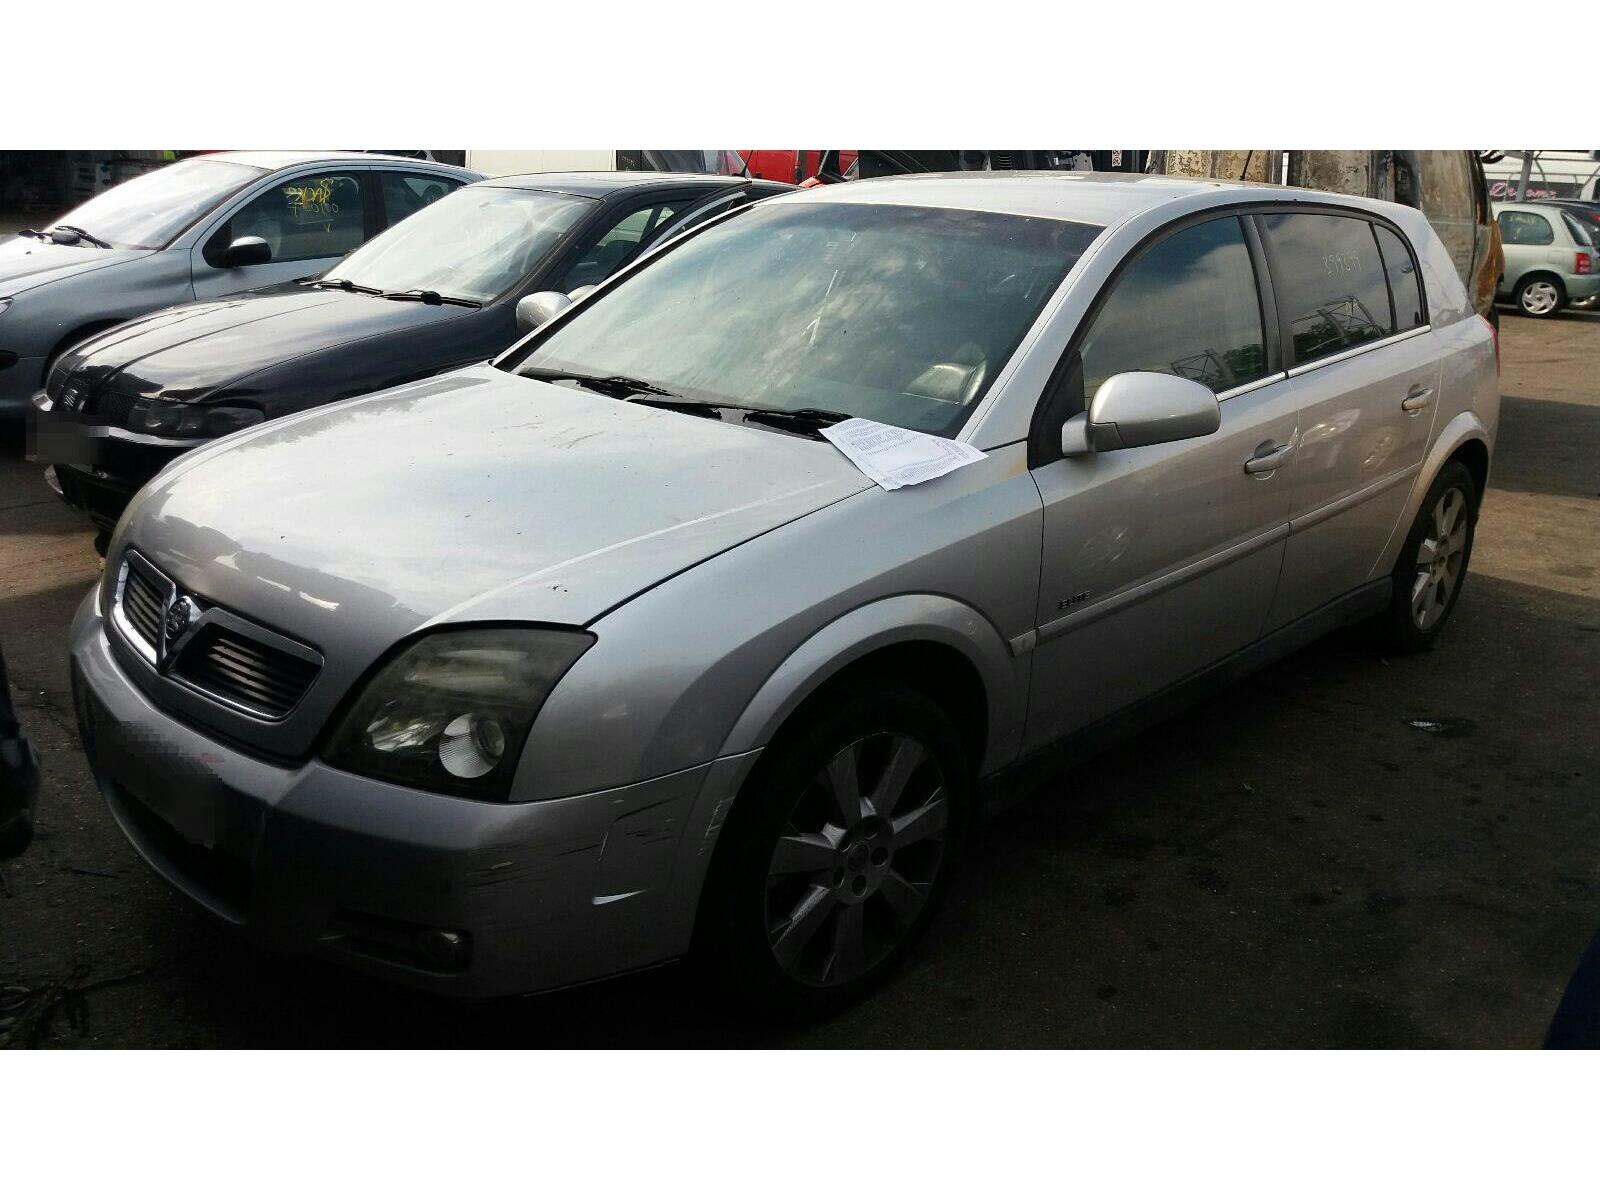 Vauxhall Signum 2003 To 2009 Elite 5 Door Hatchback